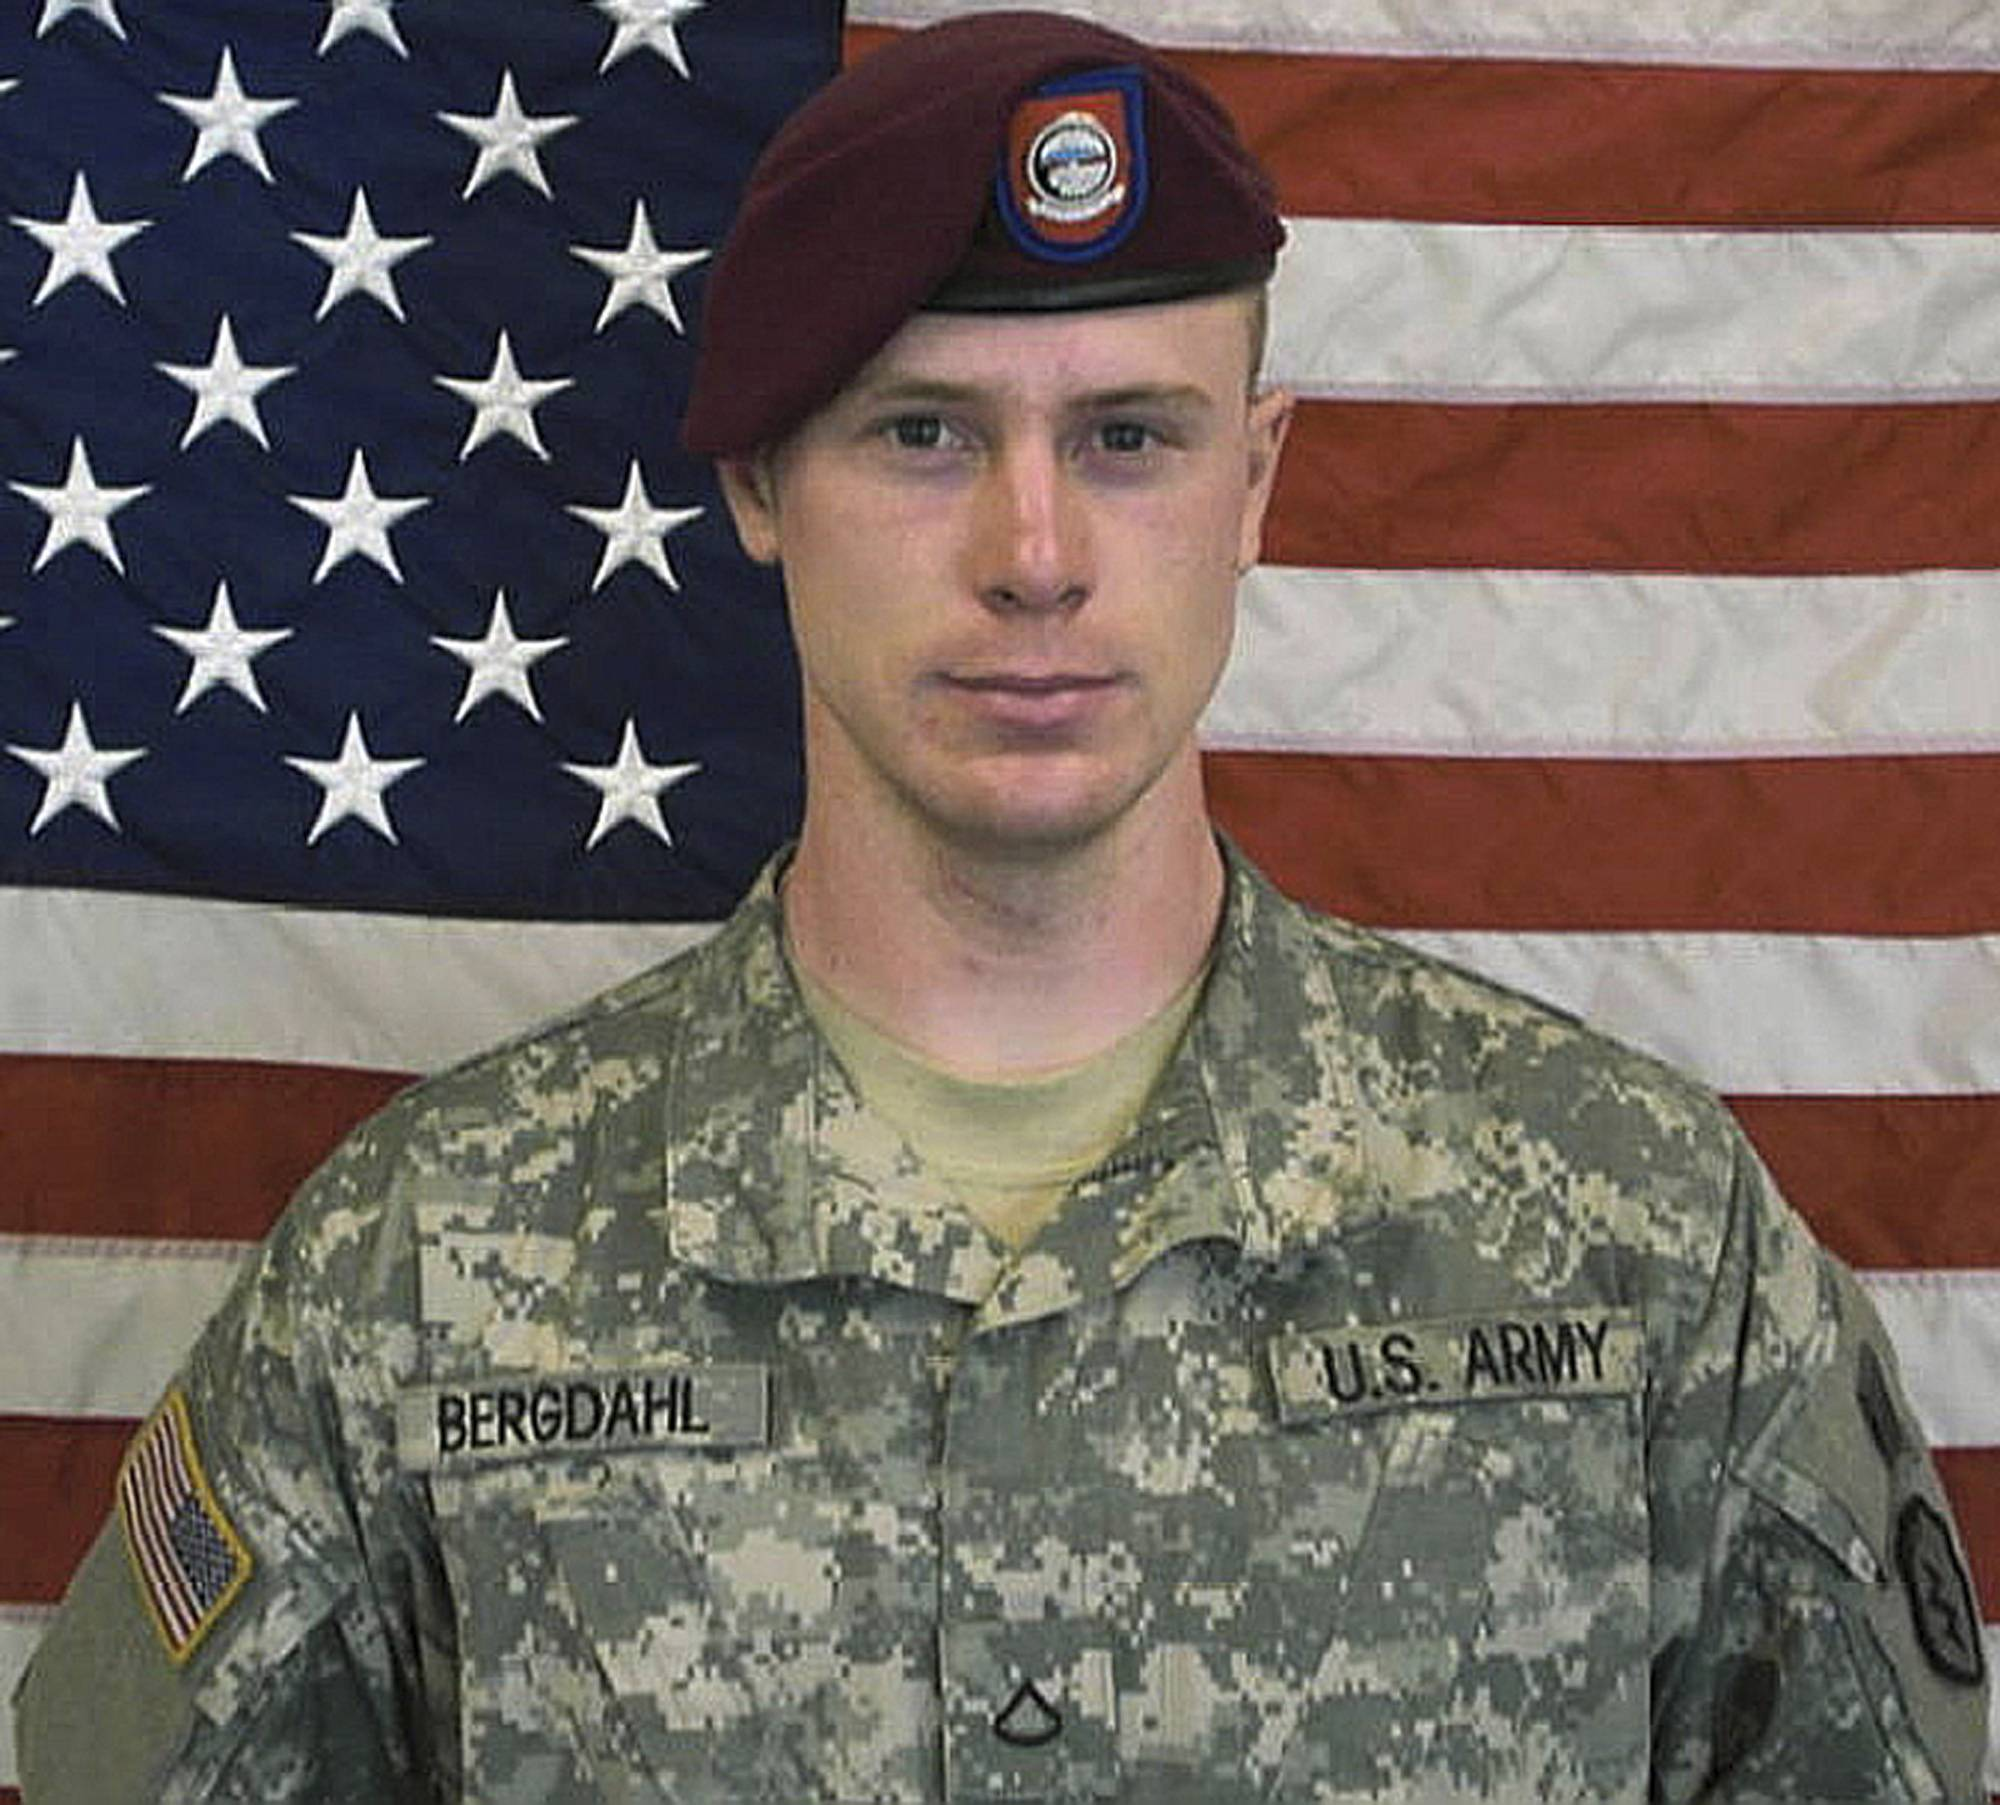 Top military officer: Bergdahl case not closed